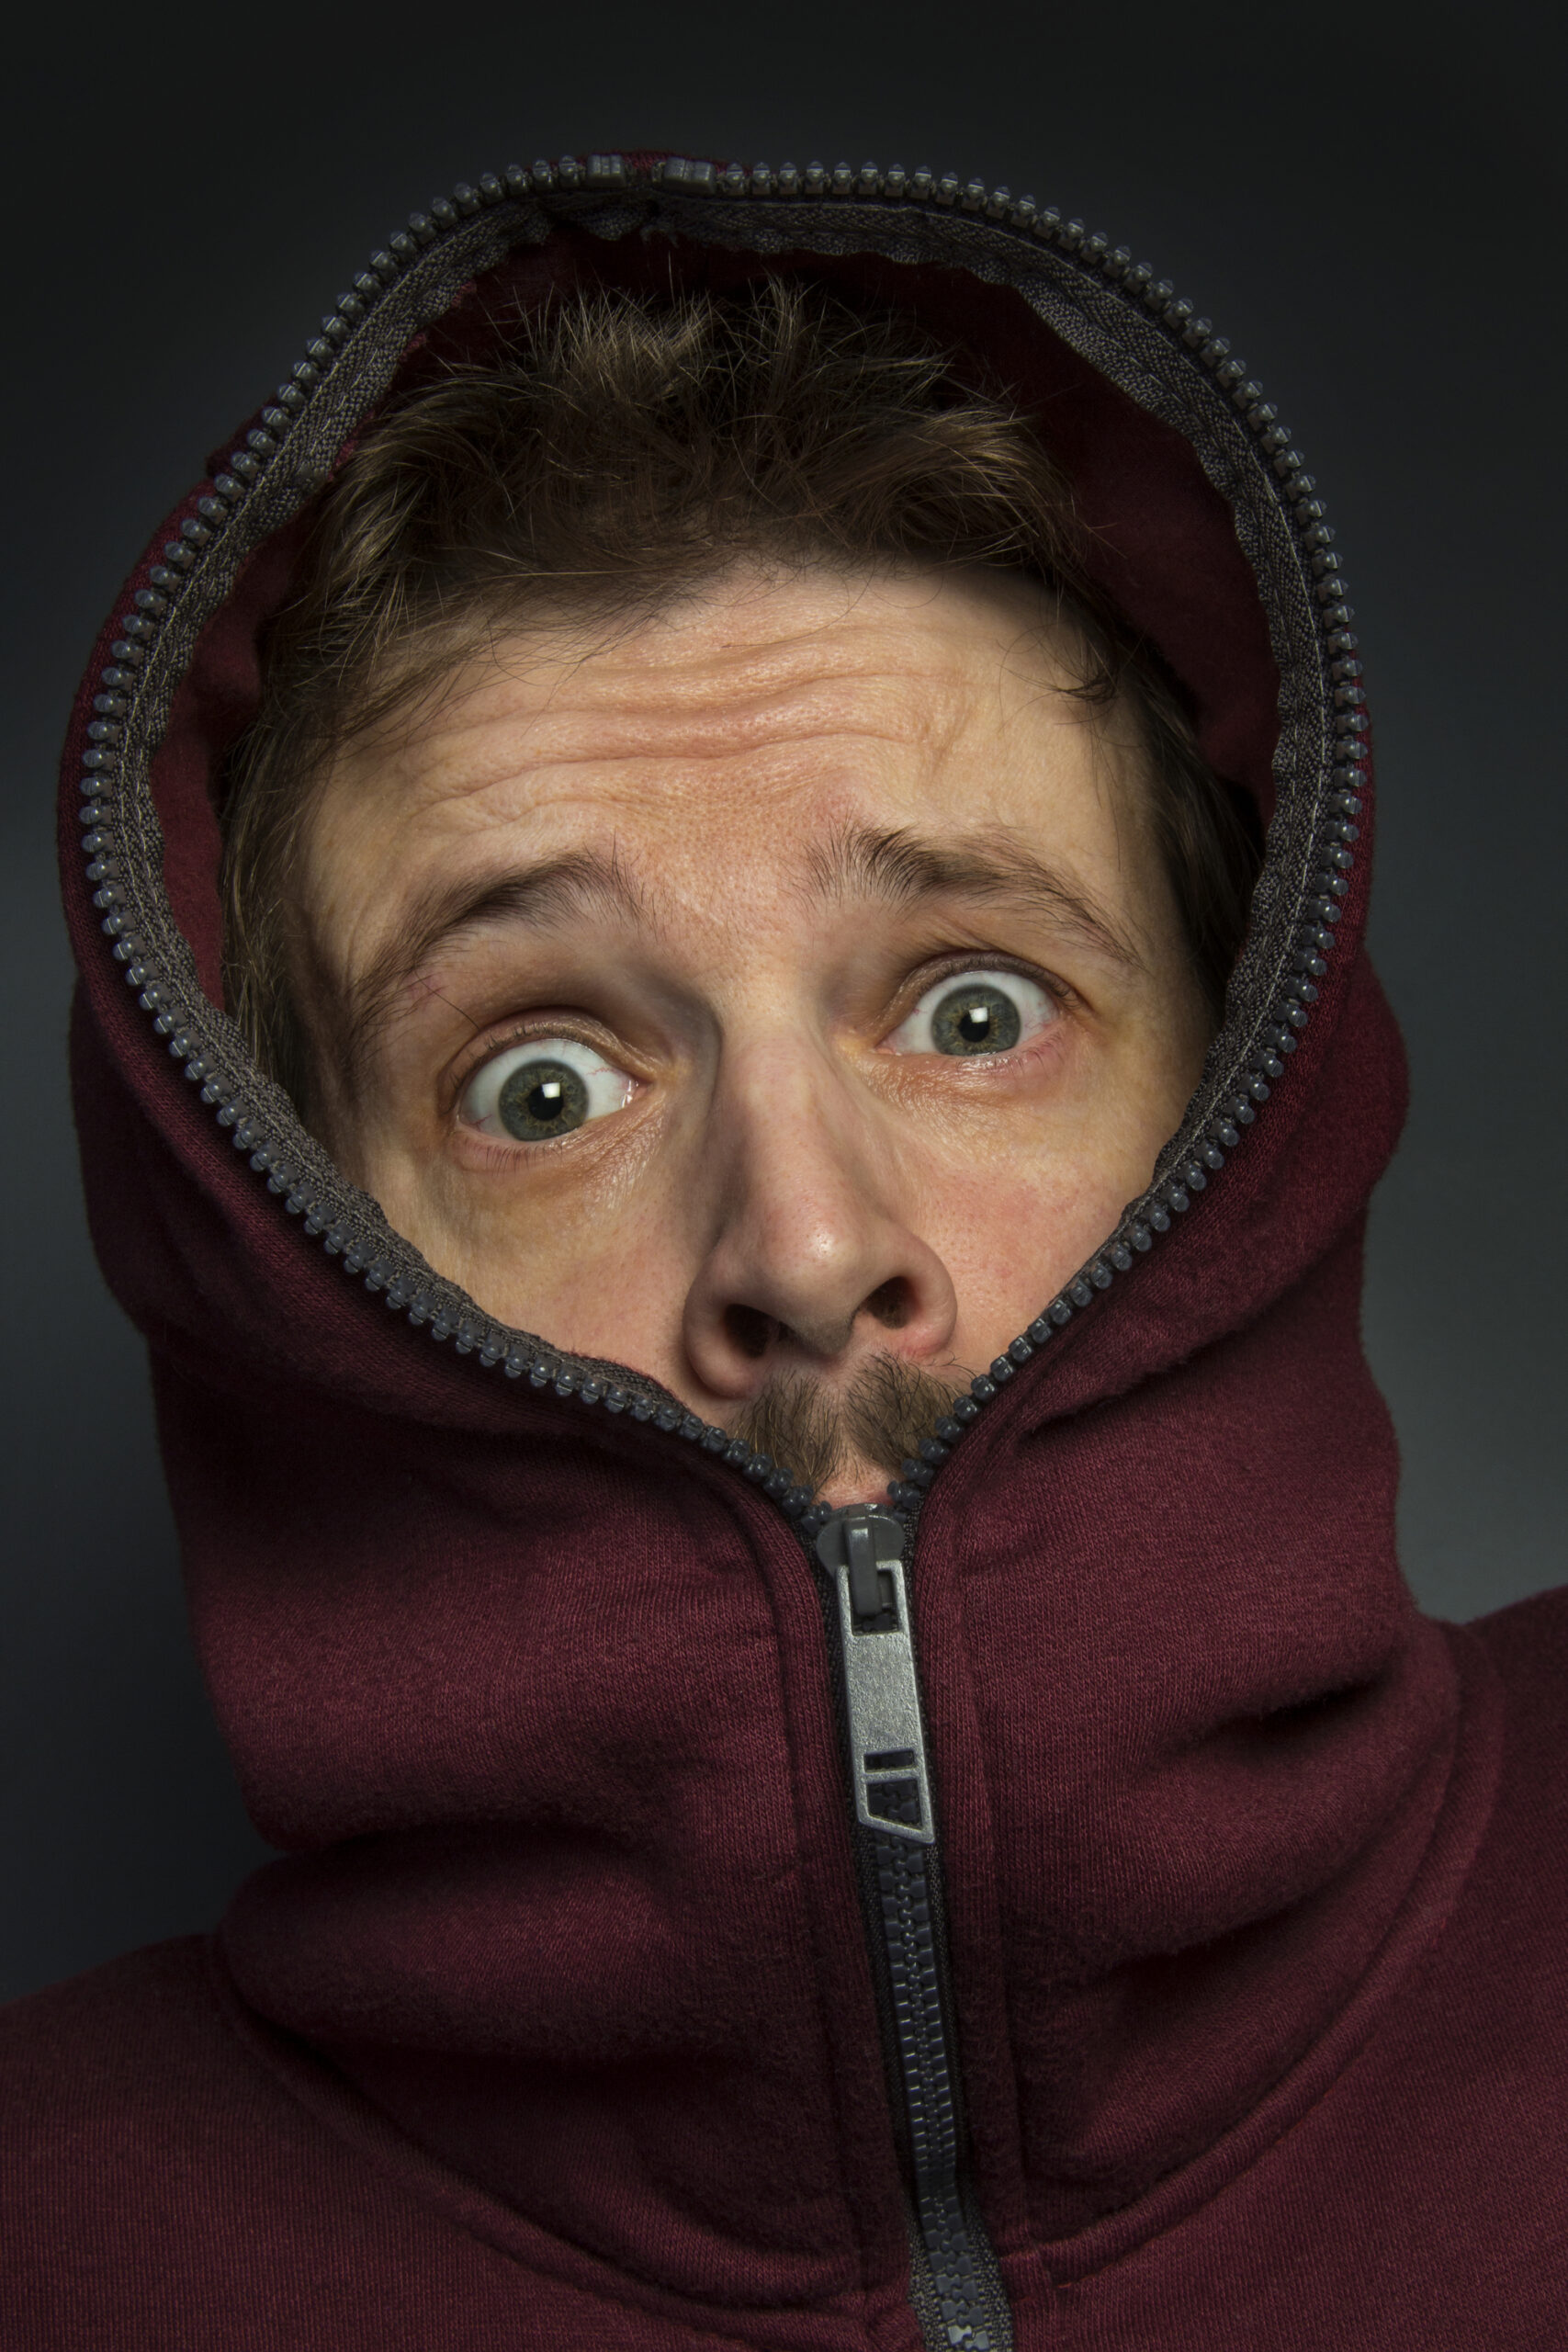 Man in hoody with a look of fear and surprise on his face.